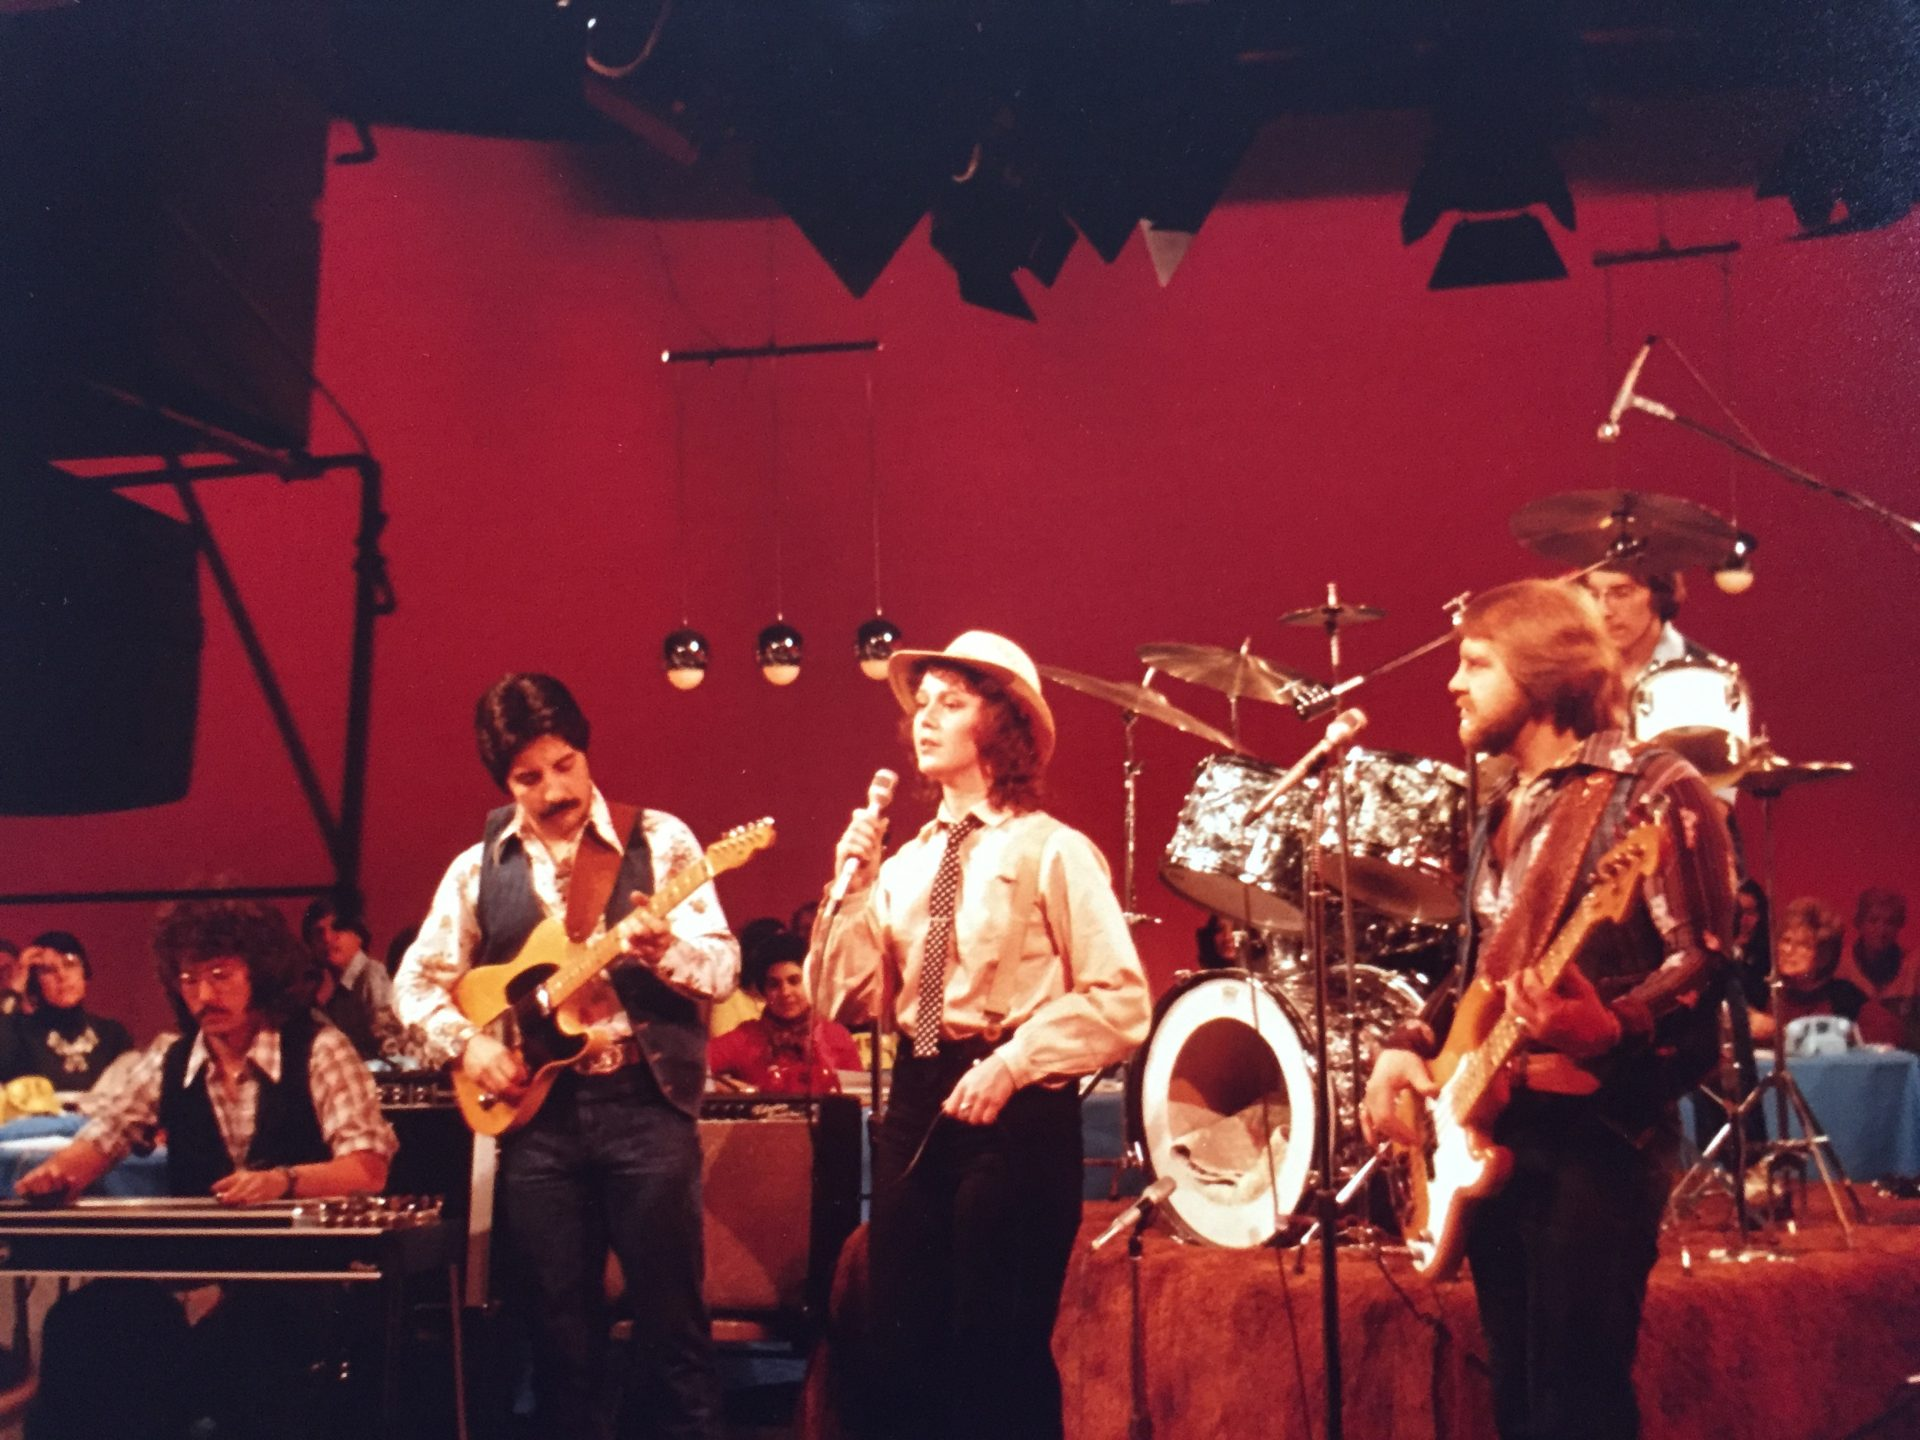 """""""Mr. Ed"""" playing bass with Super Cowboy live on PBS television from New York City on March 4, 1978. This was the first live TV broadcast of the Grand Ole Opry and we played live from NYC in between the Opry broadcast and the concurrent PBS fund drive."""